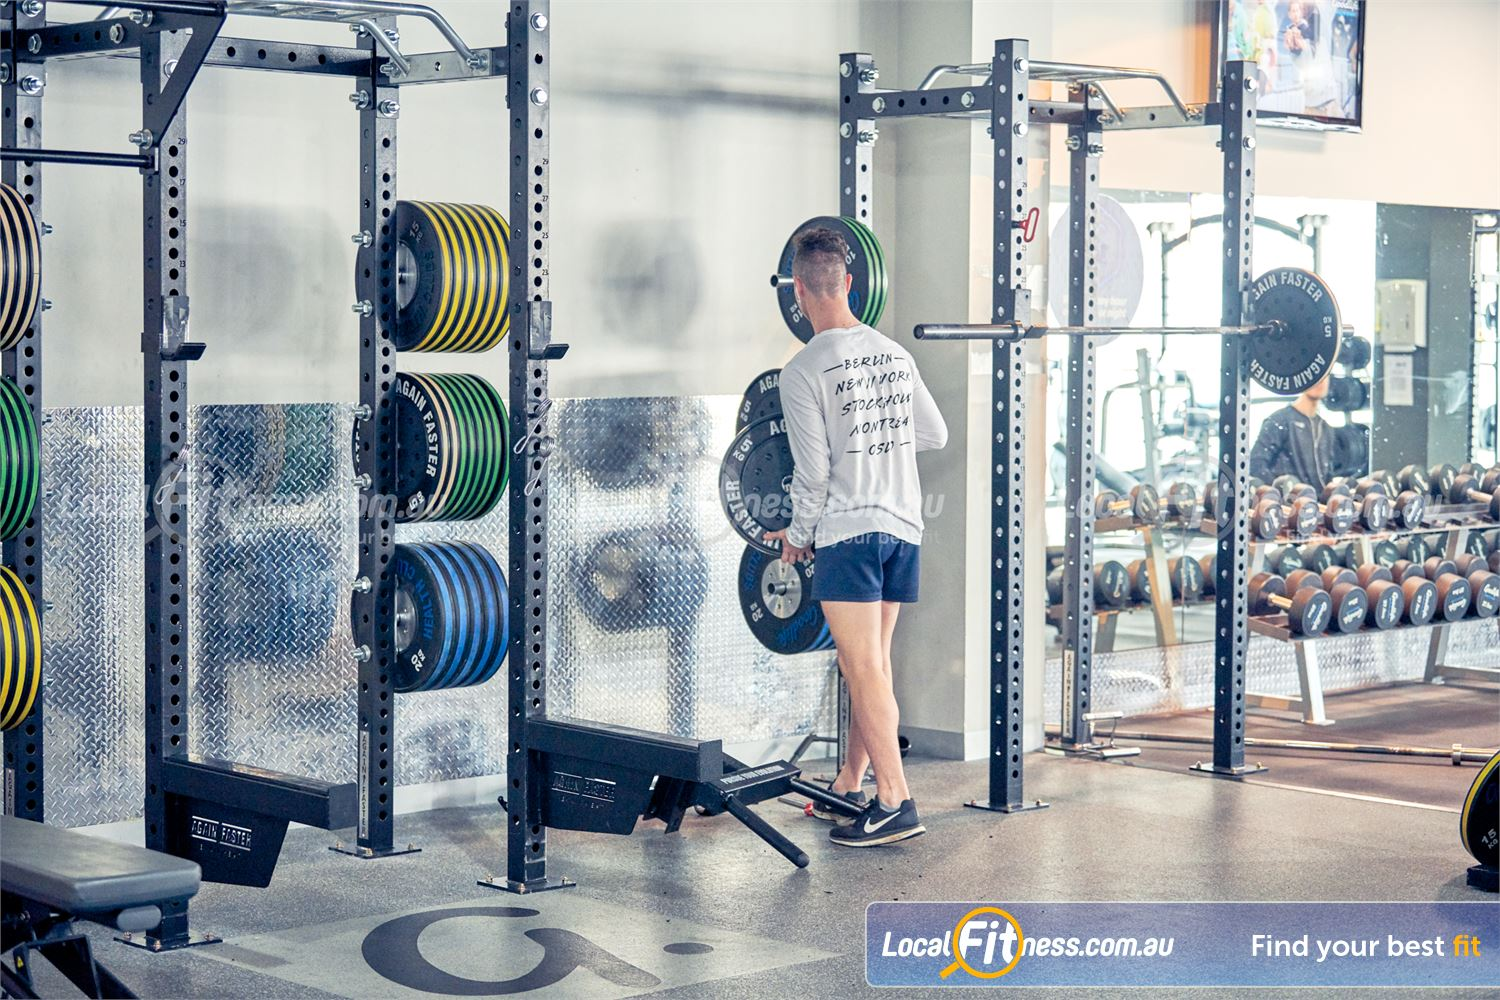 Goodlife Health Clubs Knox City Near Knoxfield Fully equipped strength training area at Goodlife Knox City gym.